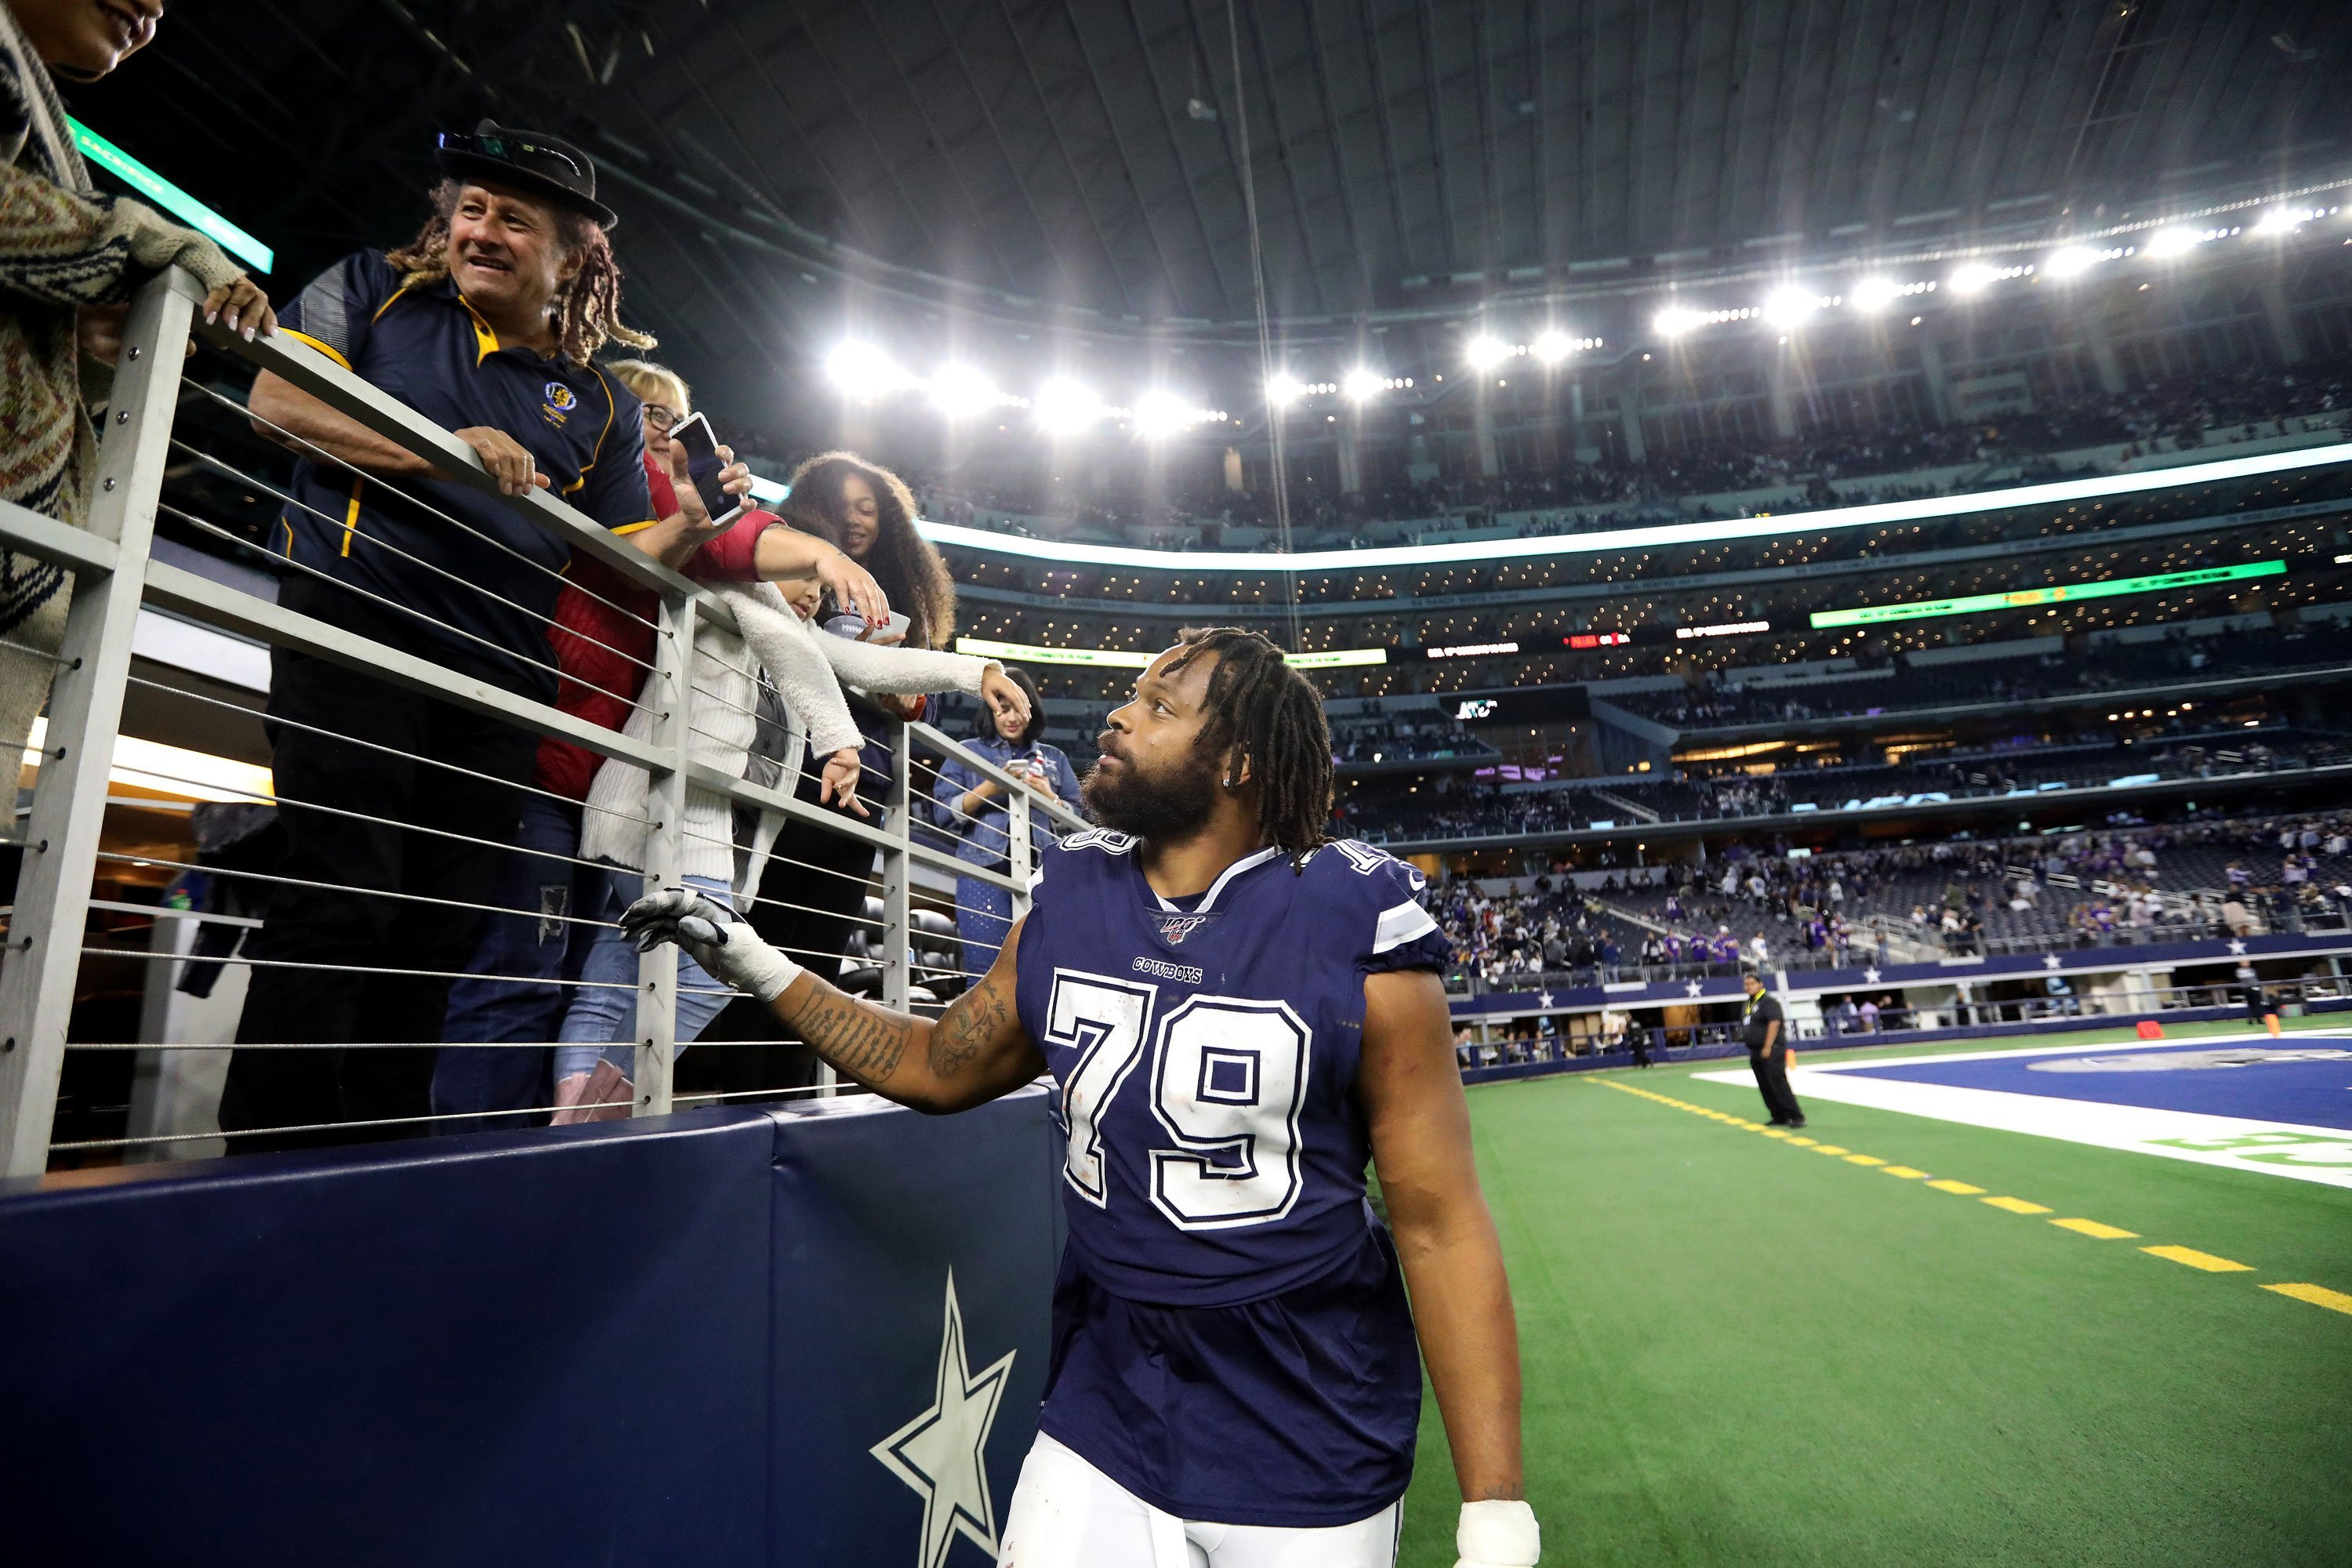 Michael Bennett says he's standing for the National Anthem because his Cowboys teammates asked him to